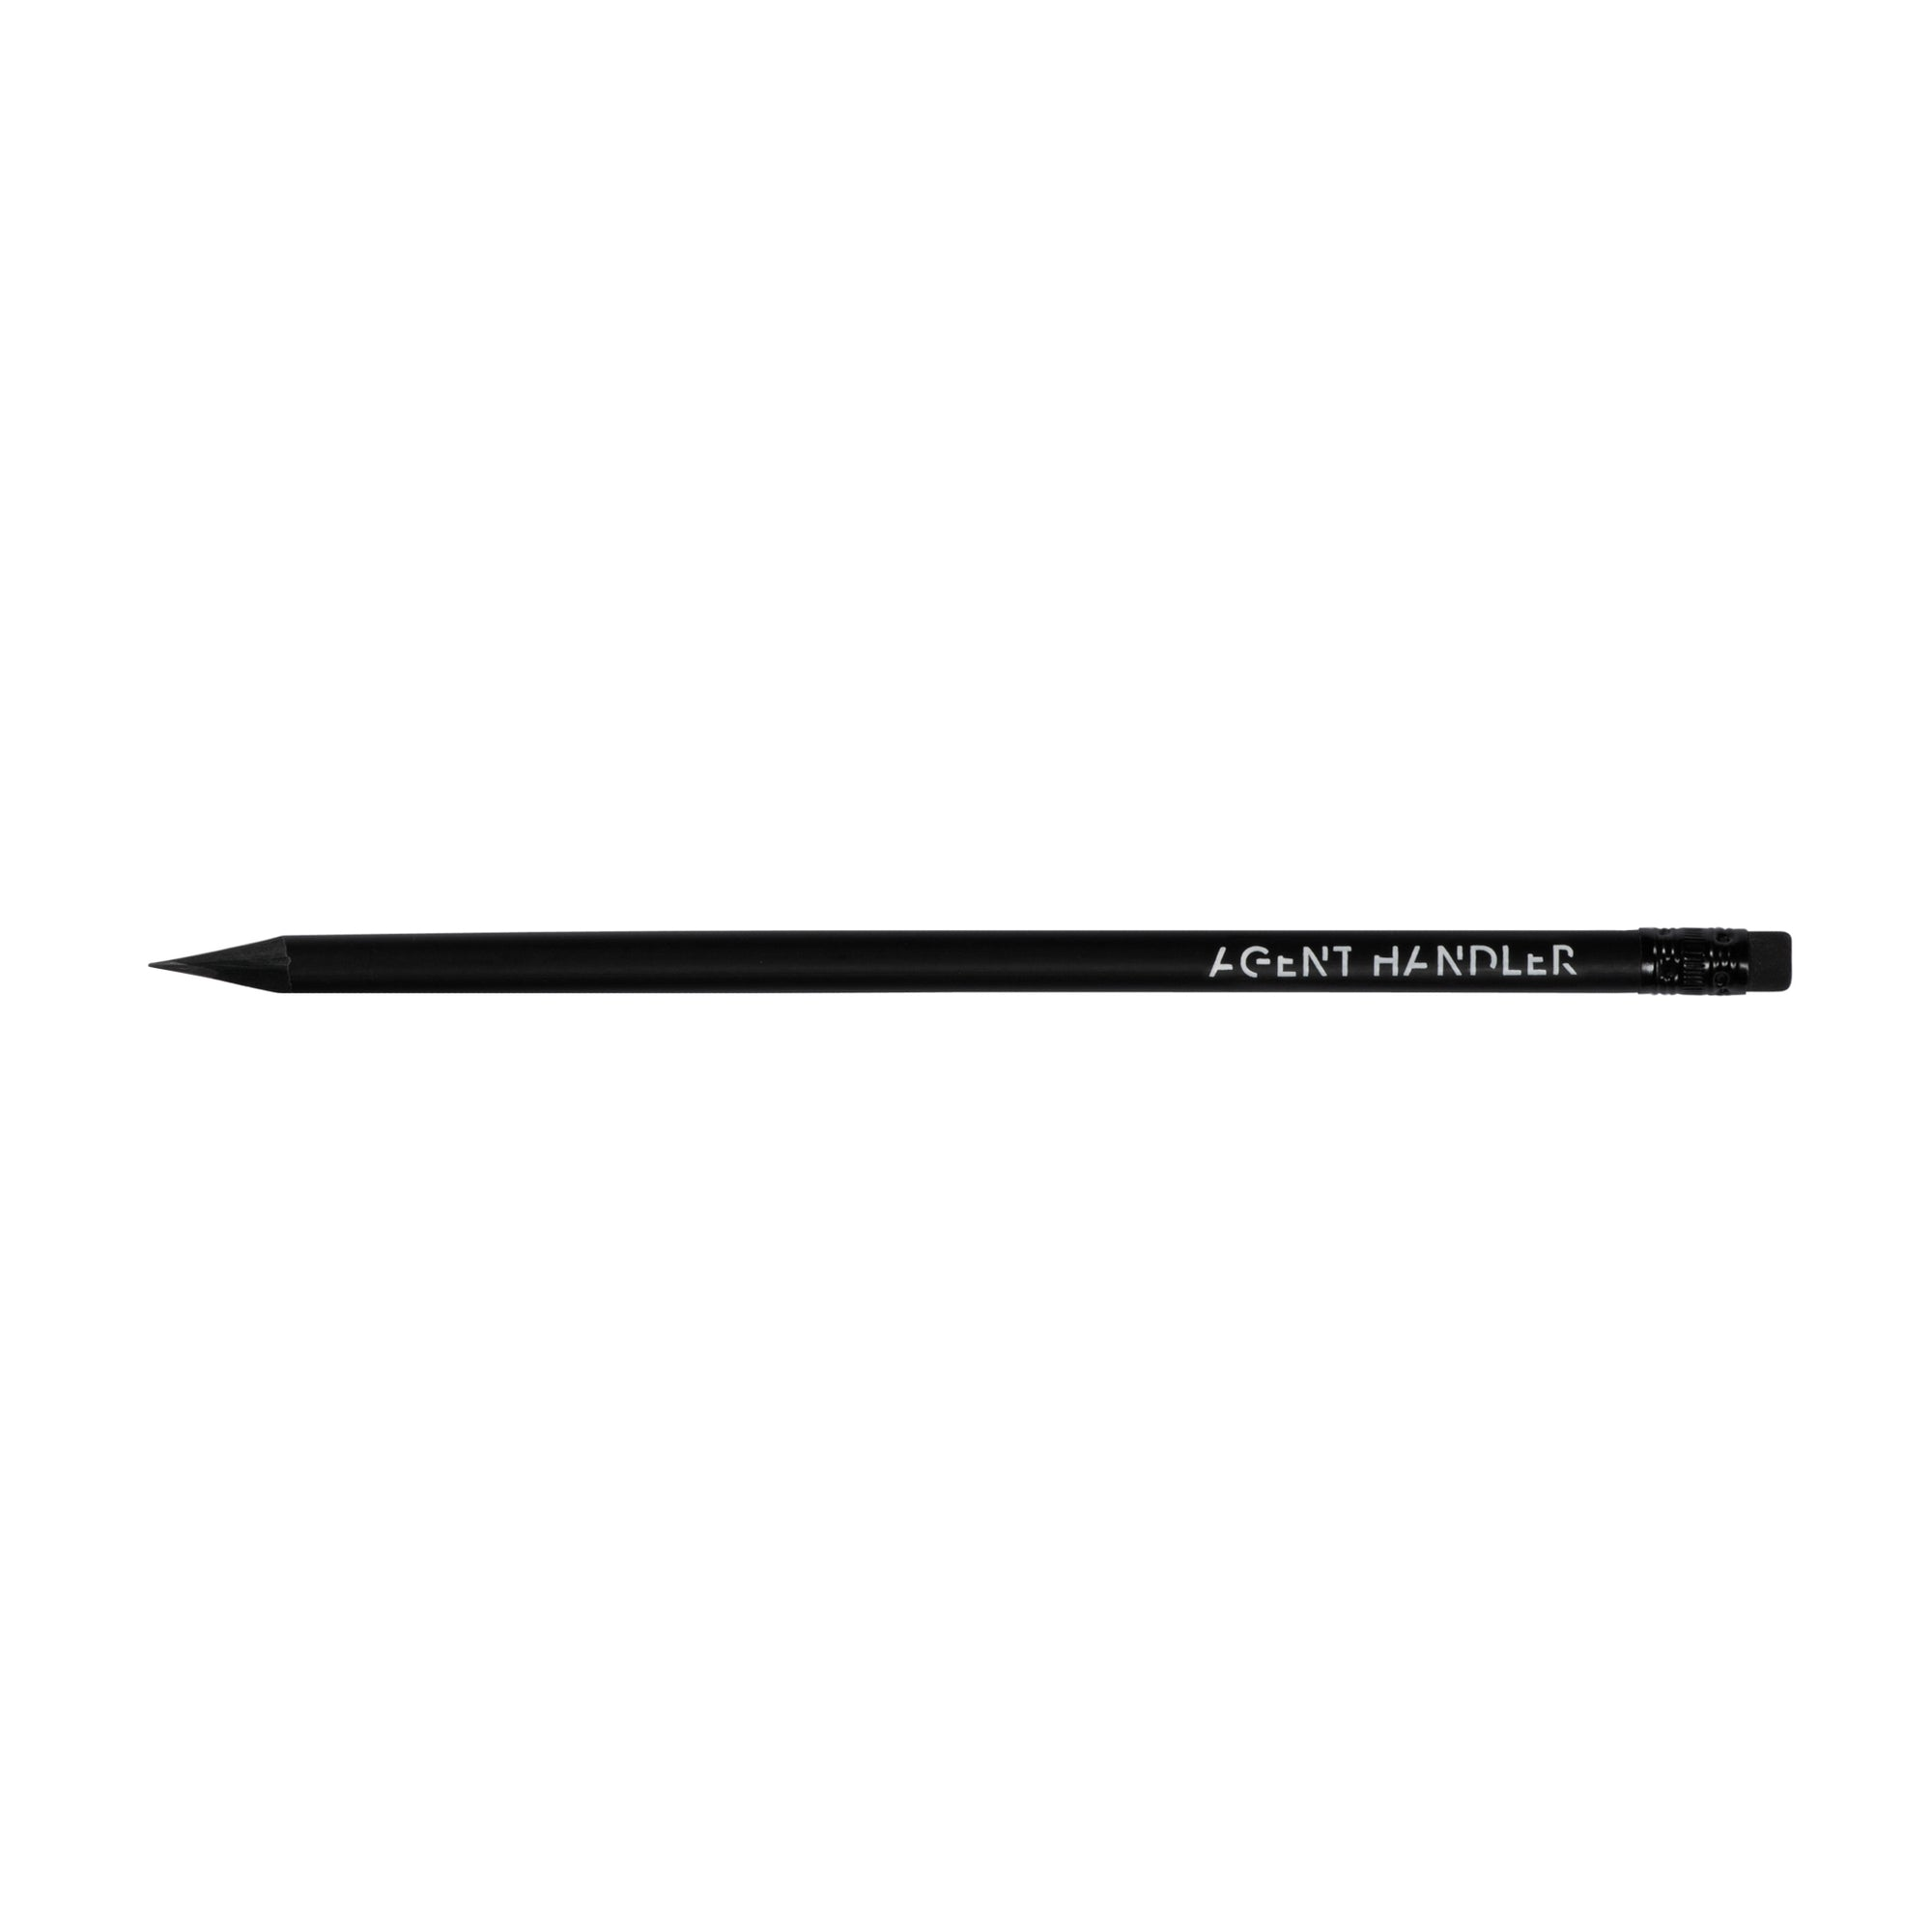 SPYSCAPE Agent Handler Pencil -